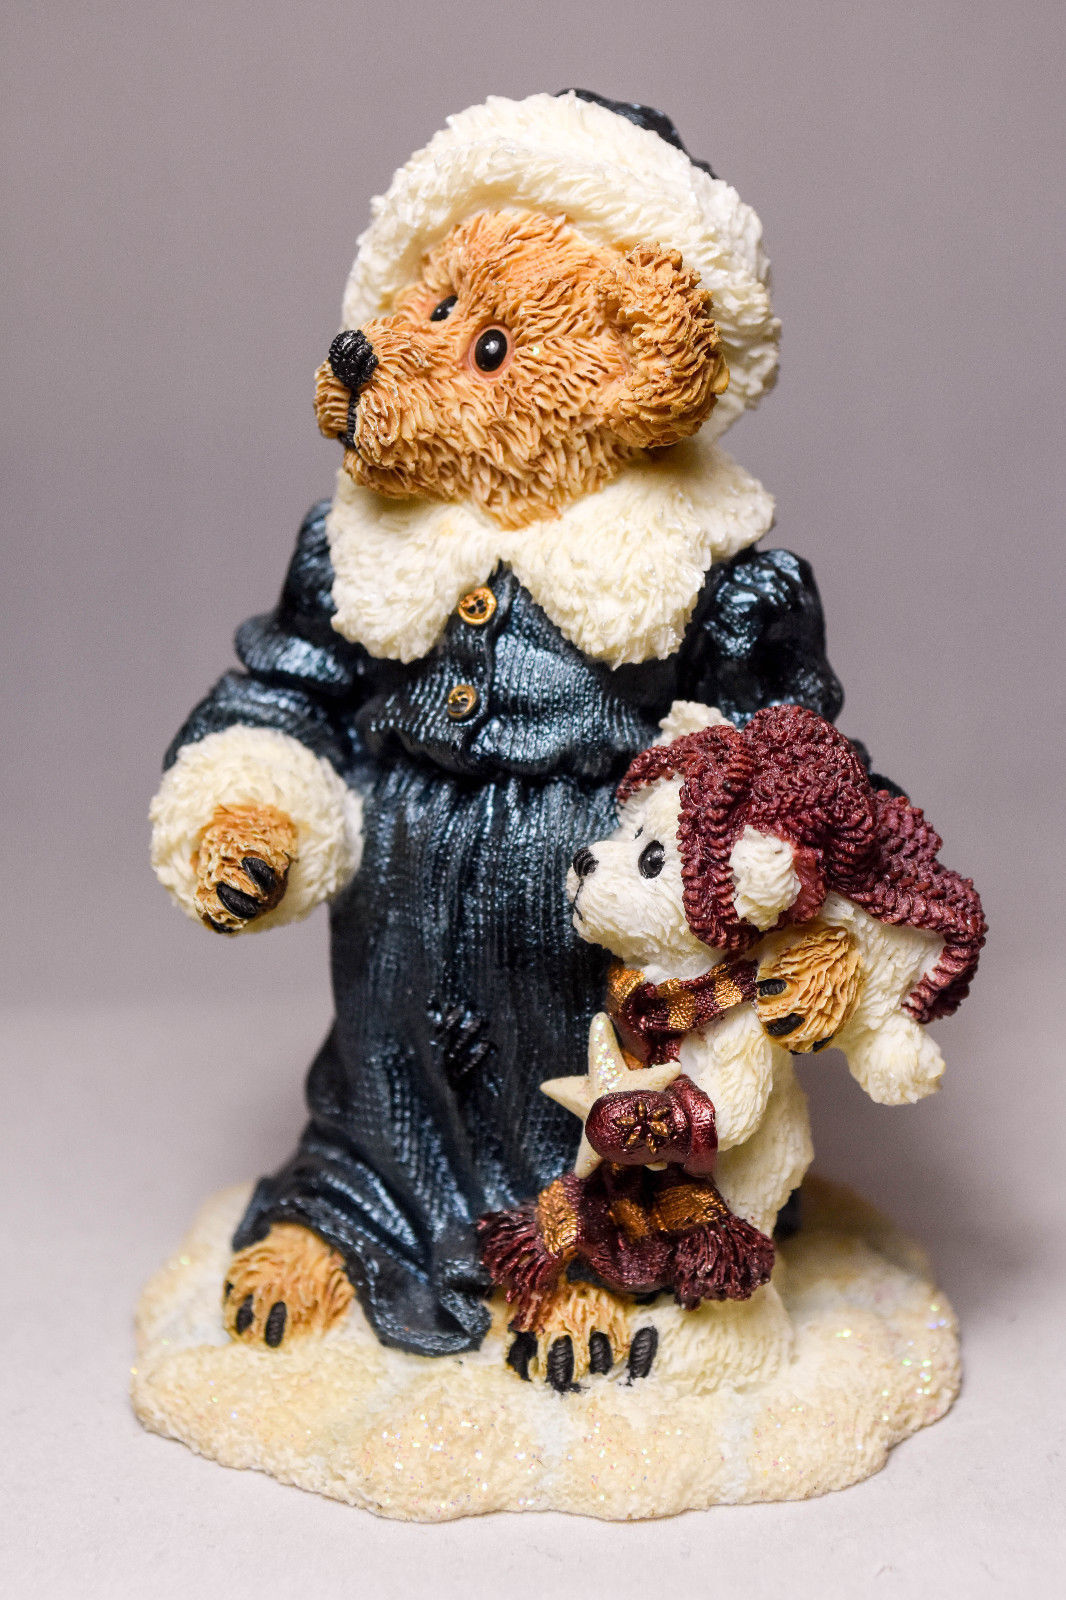 Boyds Bears: Genevieve Berriman With Brady - Style #22837 - Catch A Falling Star image 7